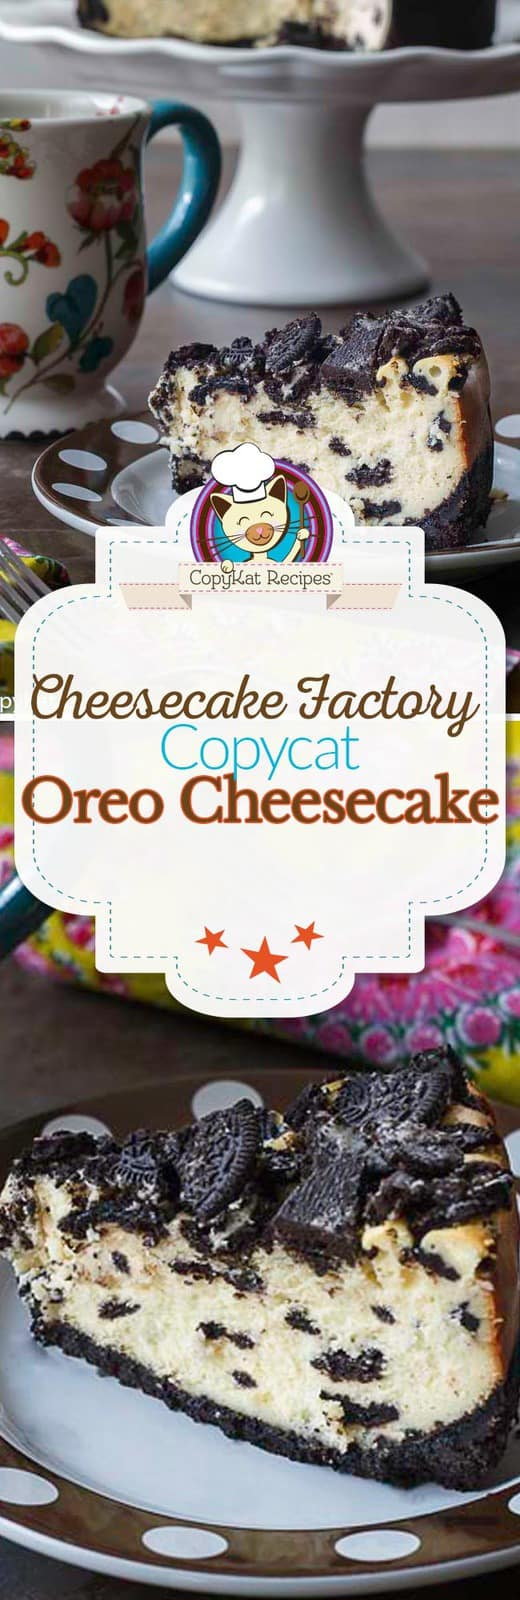 You are going to love how this copycat Cheesecake Factory Oreo cheesecake tastes. You will love this dessert recipe. #copycat #dessert #cheesecakefactory #oreo #cheesecake #creamcheese